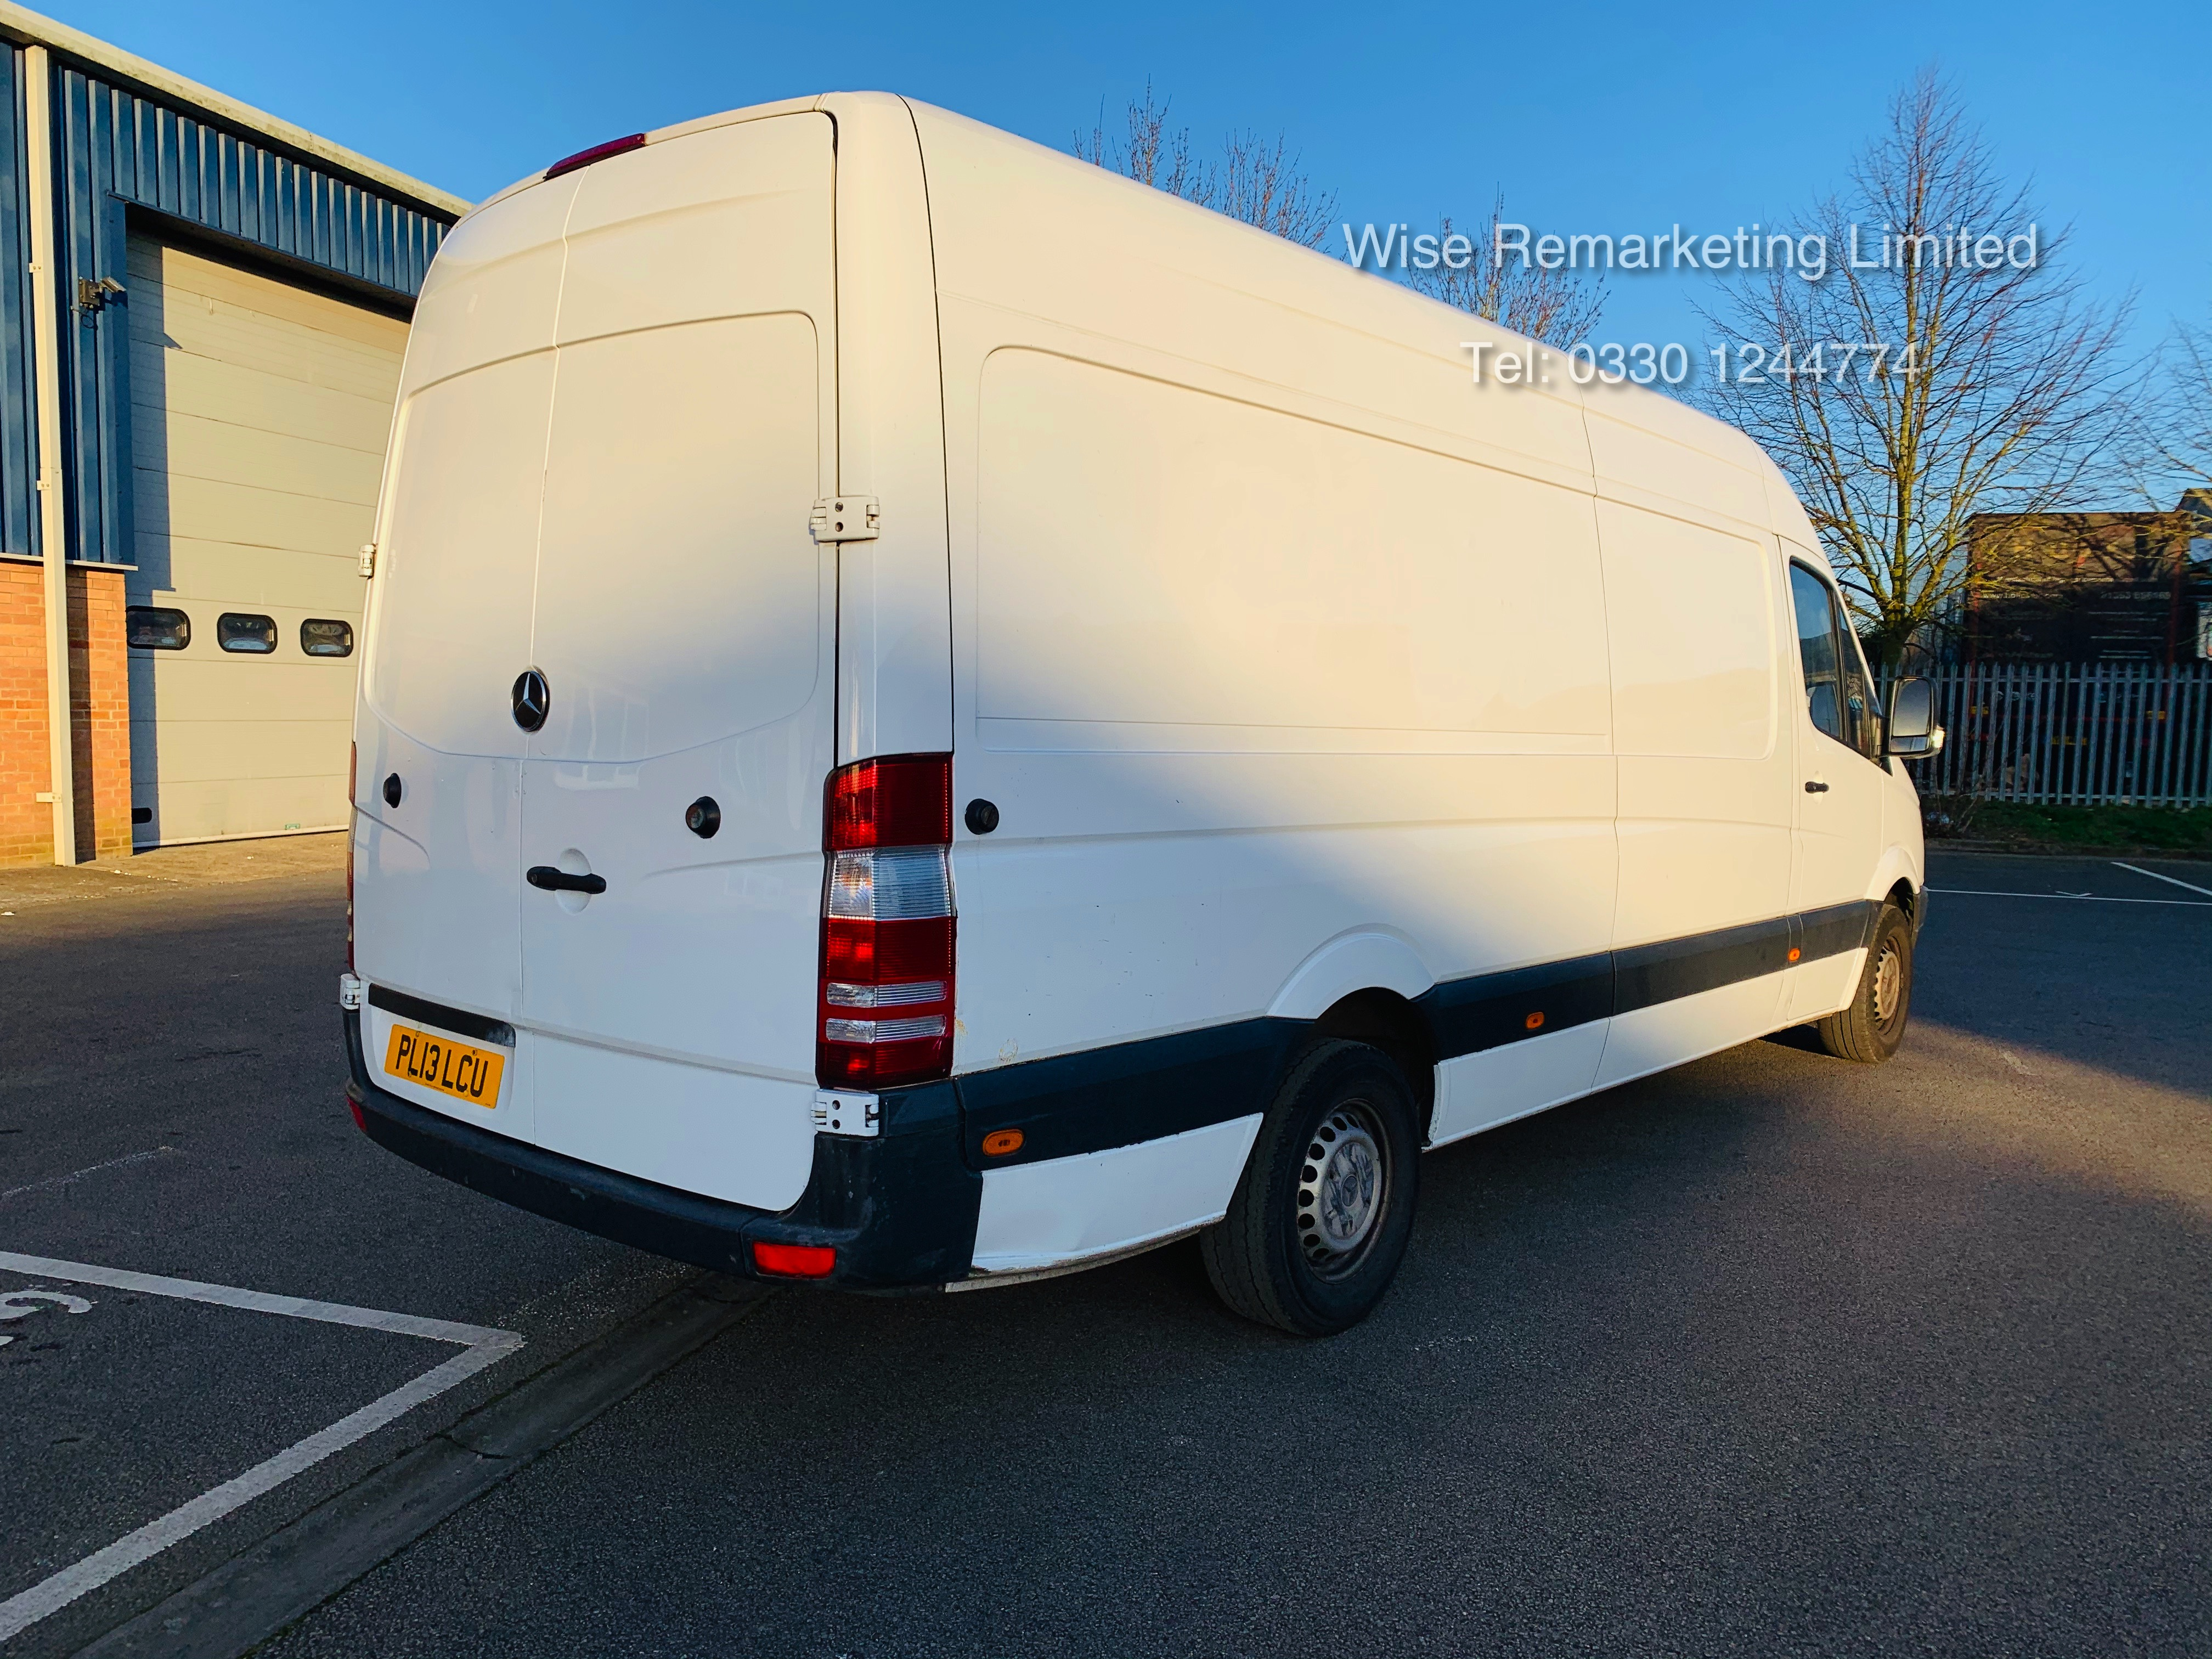 Mercedes Sprinter 316 2.1 CDI Long Wheel Base High Roof Van - 2013 13 Reg - 1 Owner From New - Image 7 of 20